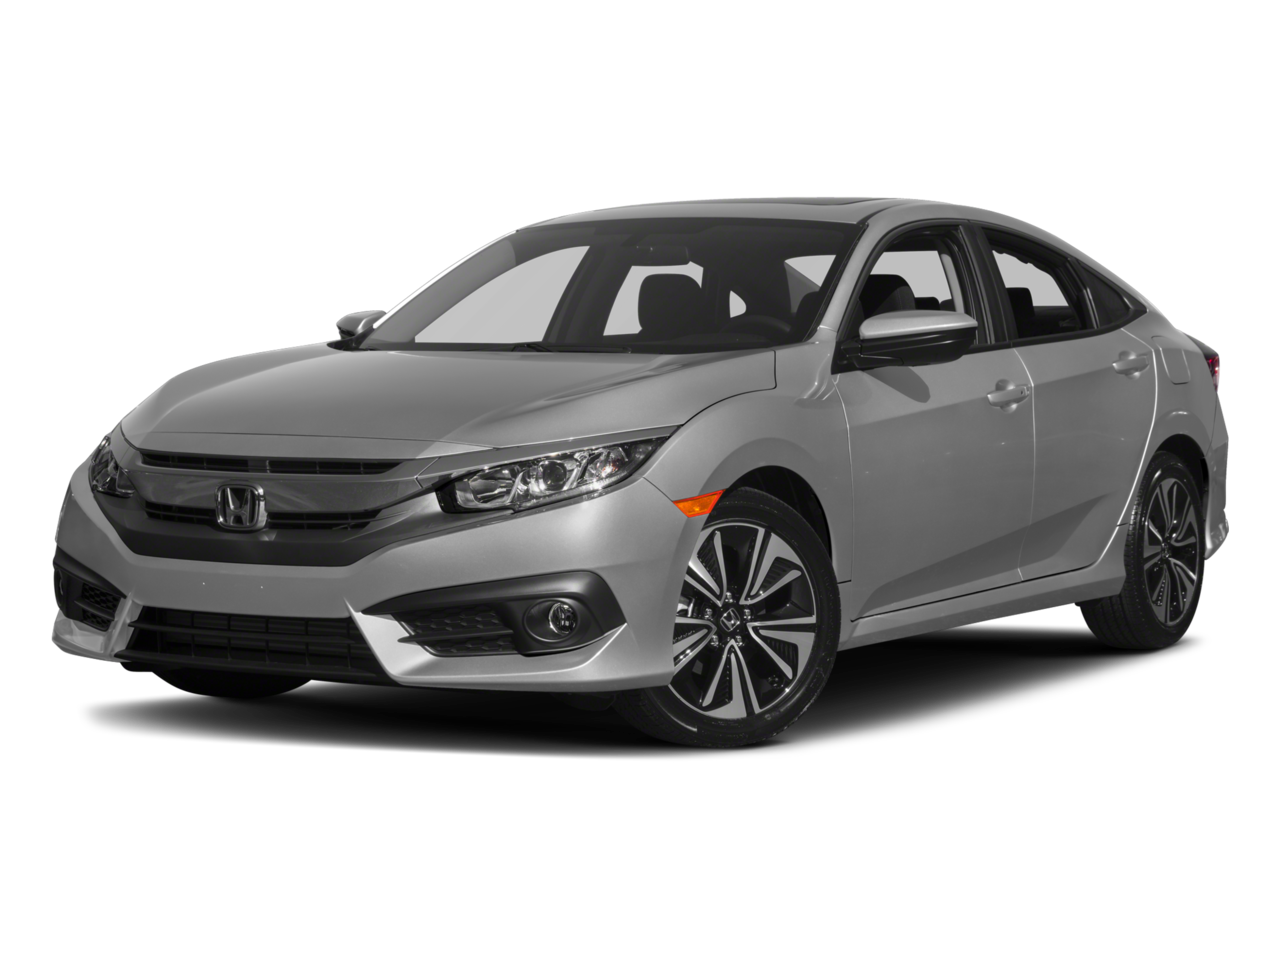 2017 Honda Civic Sedan - New Car Deals Springfield MO